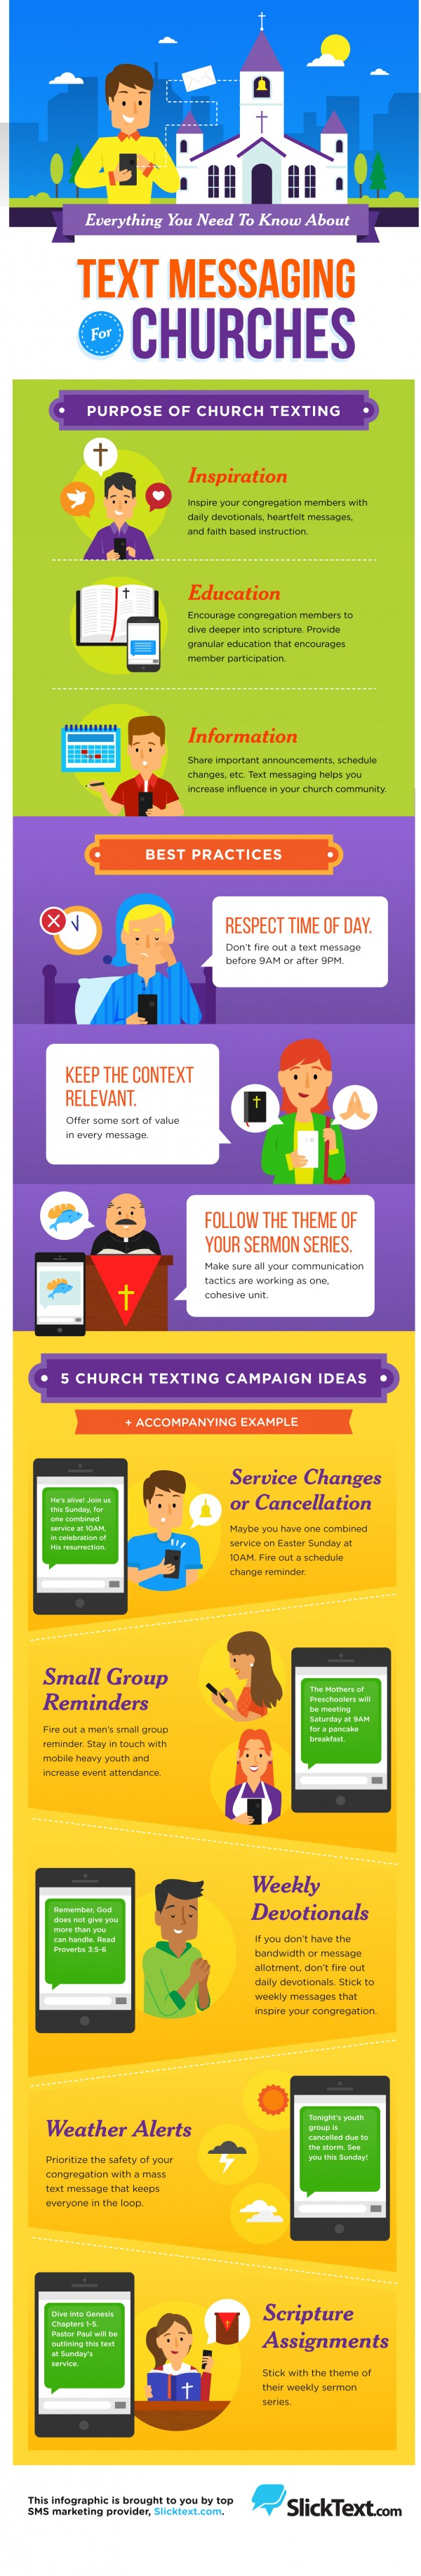 text messaging for churches